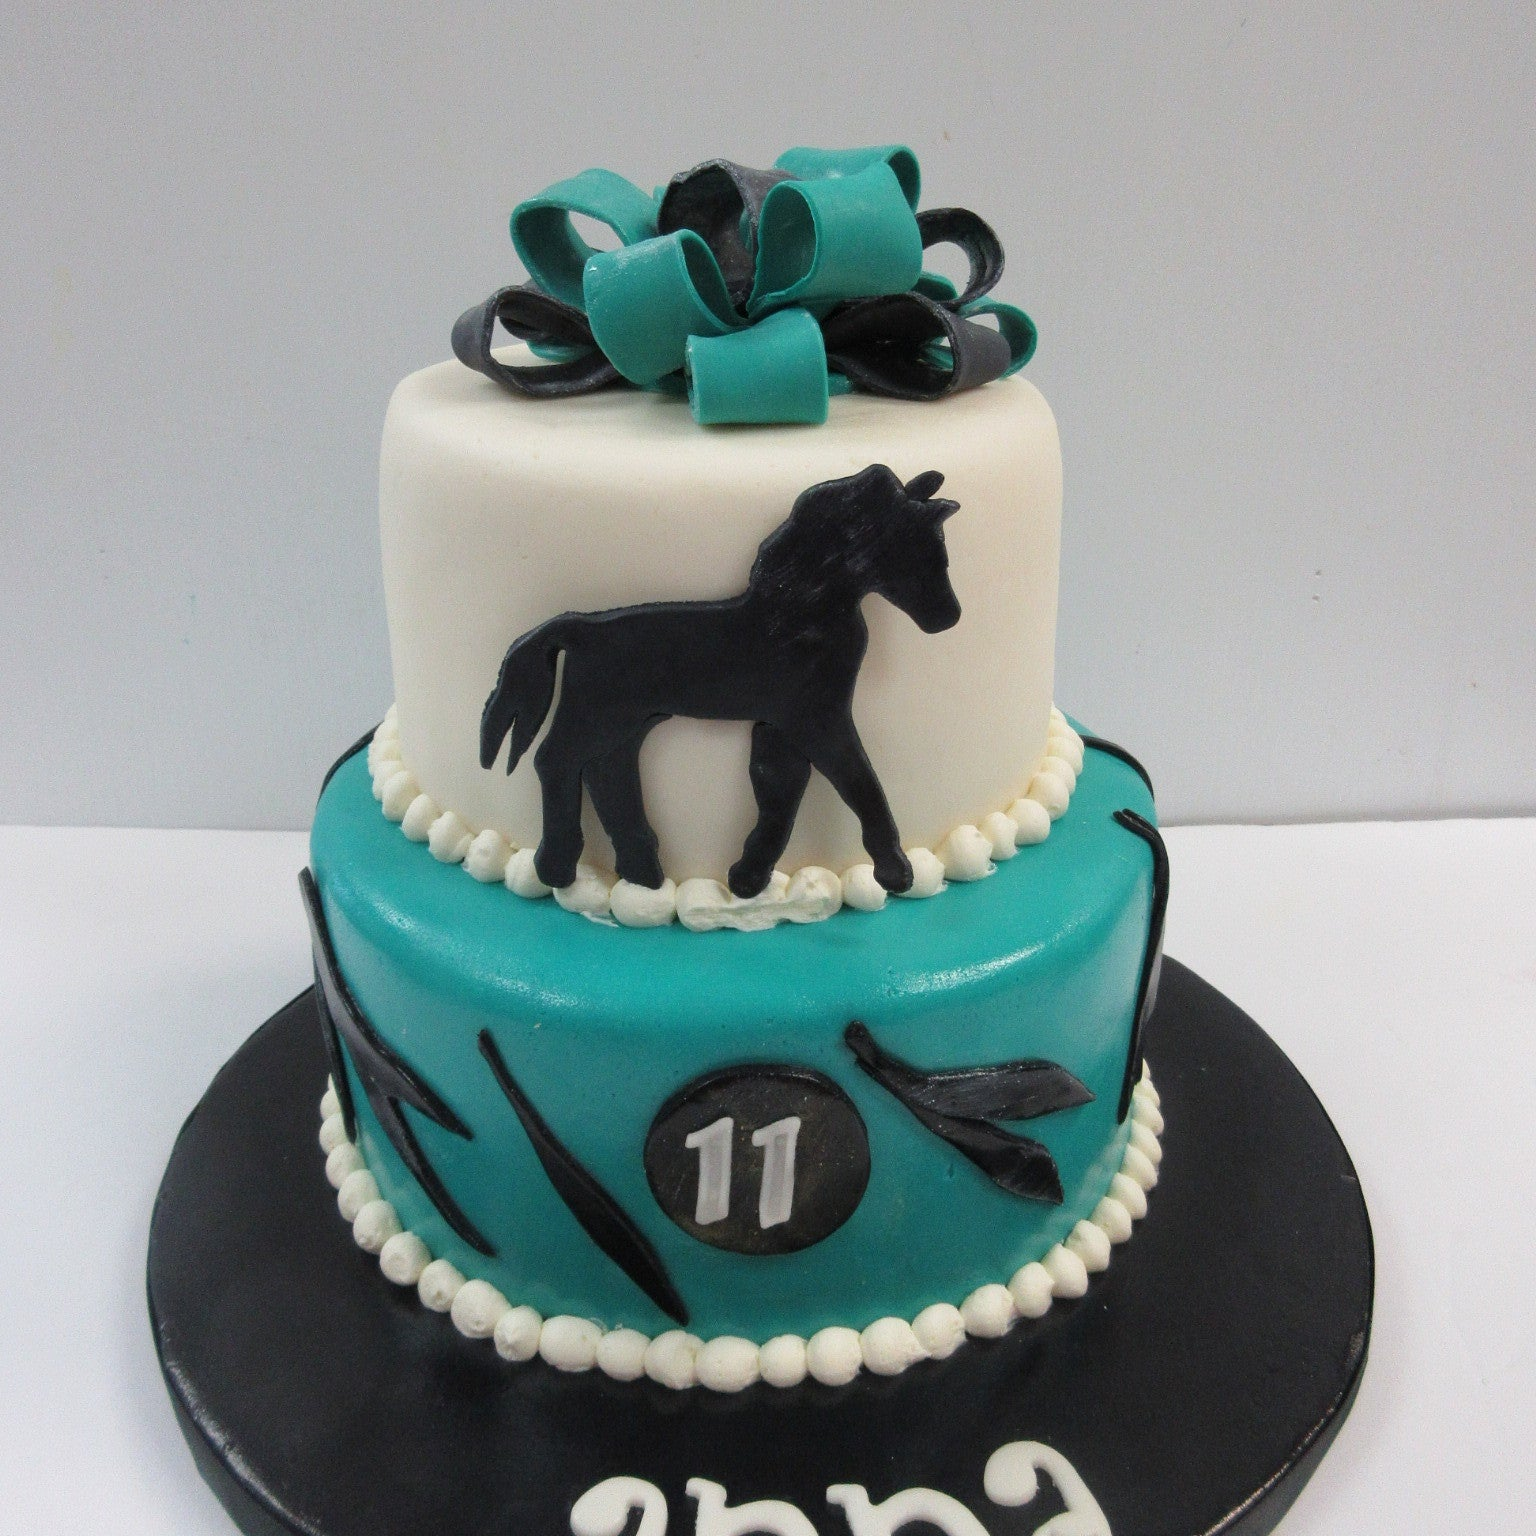 2-tier Horse-themed Fondant Covered Cake